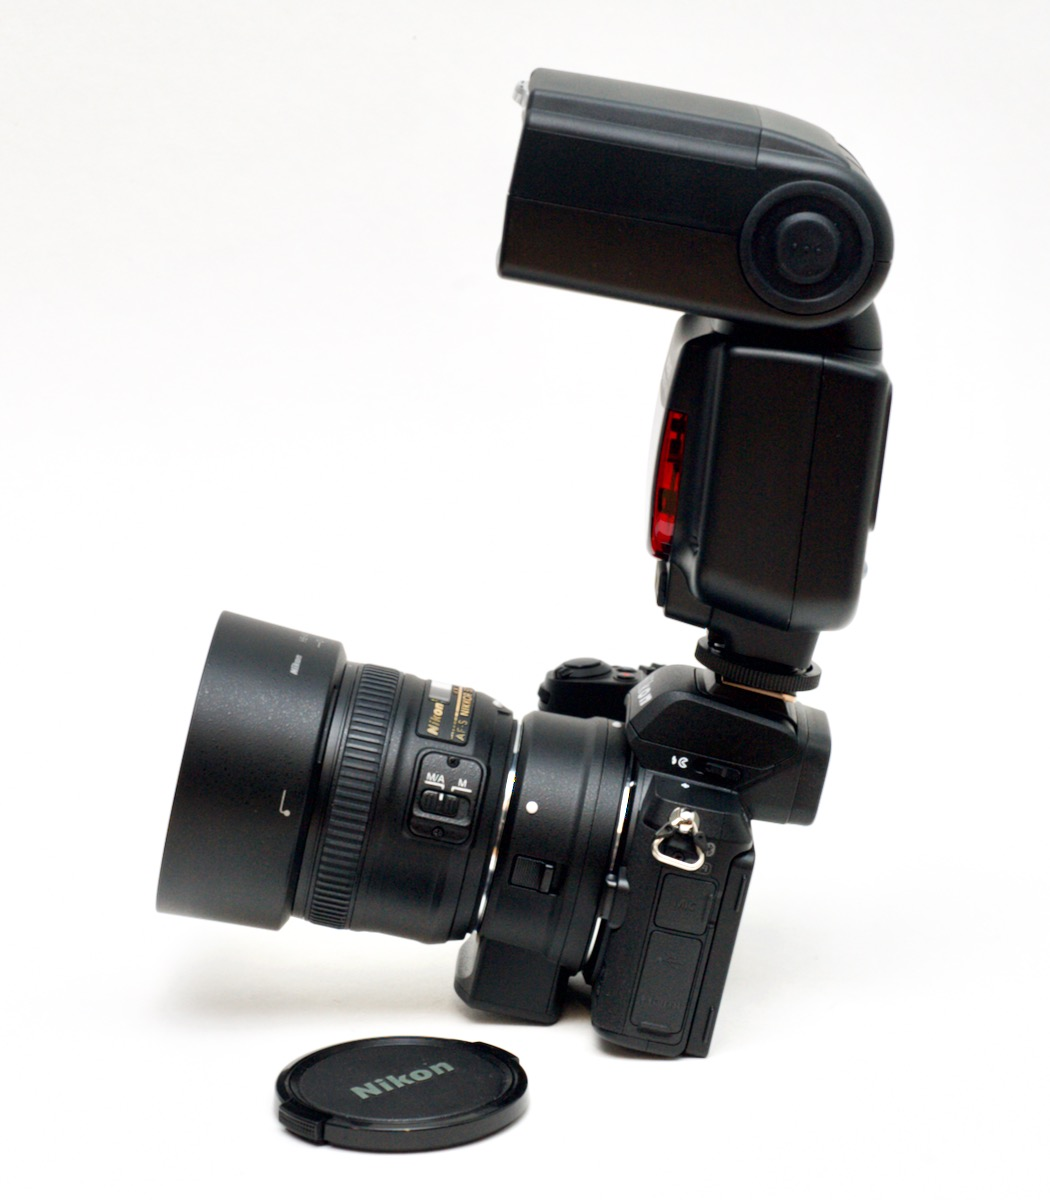 Z50 balance issues with FTZ adapter and 50mm lens and flash strobe